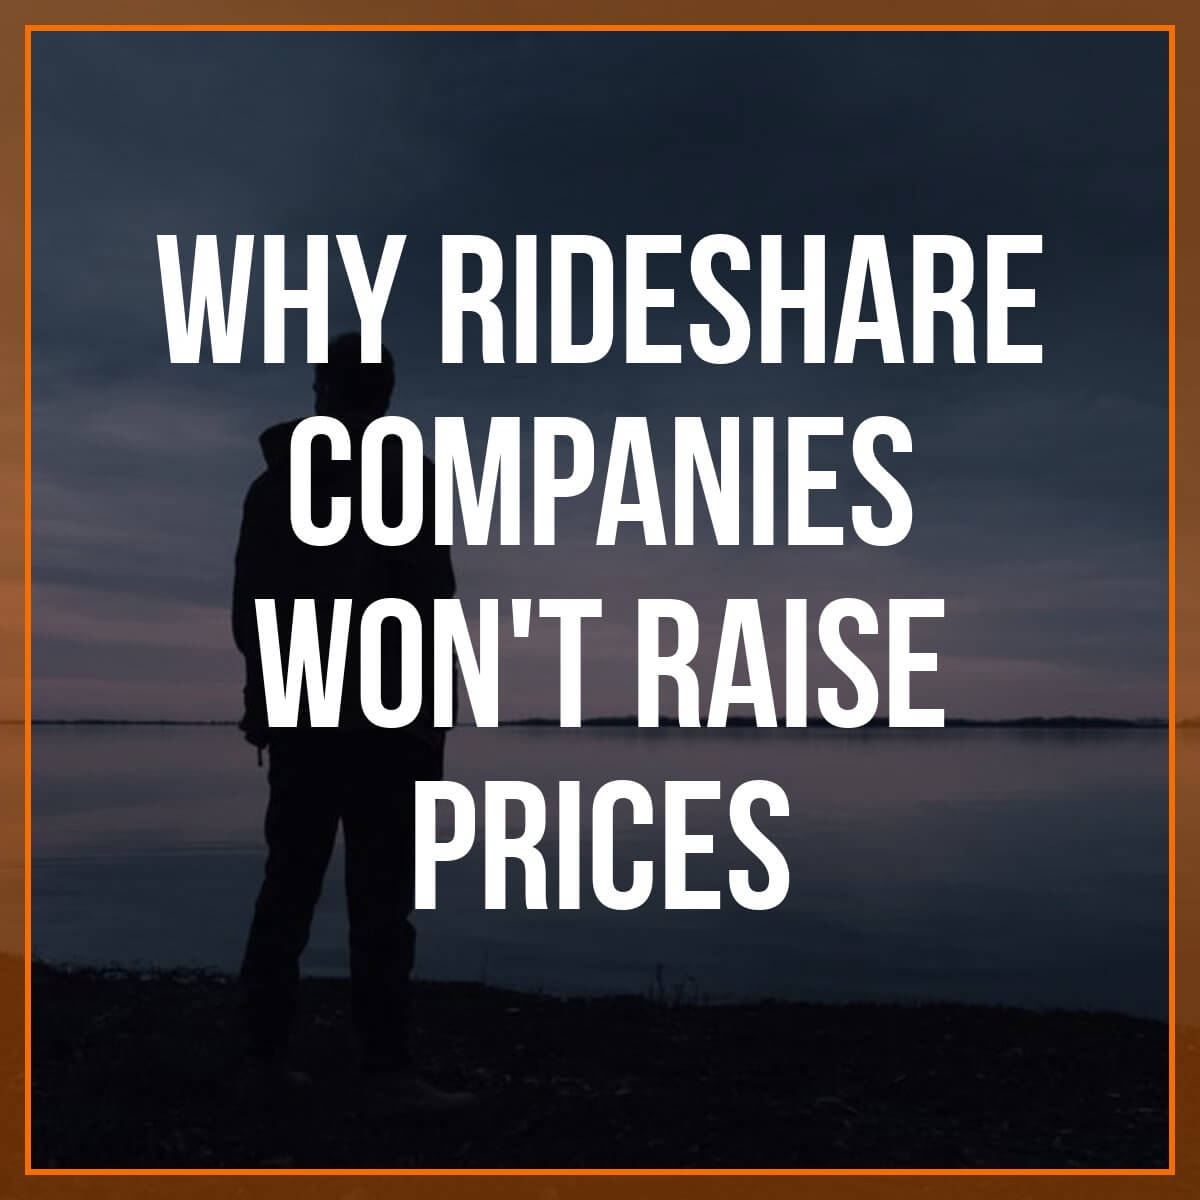 Why Rideshare Companies Won't Raise Prices